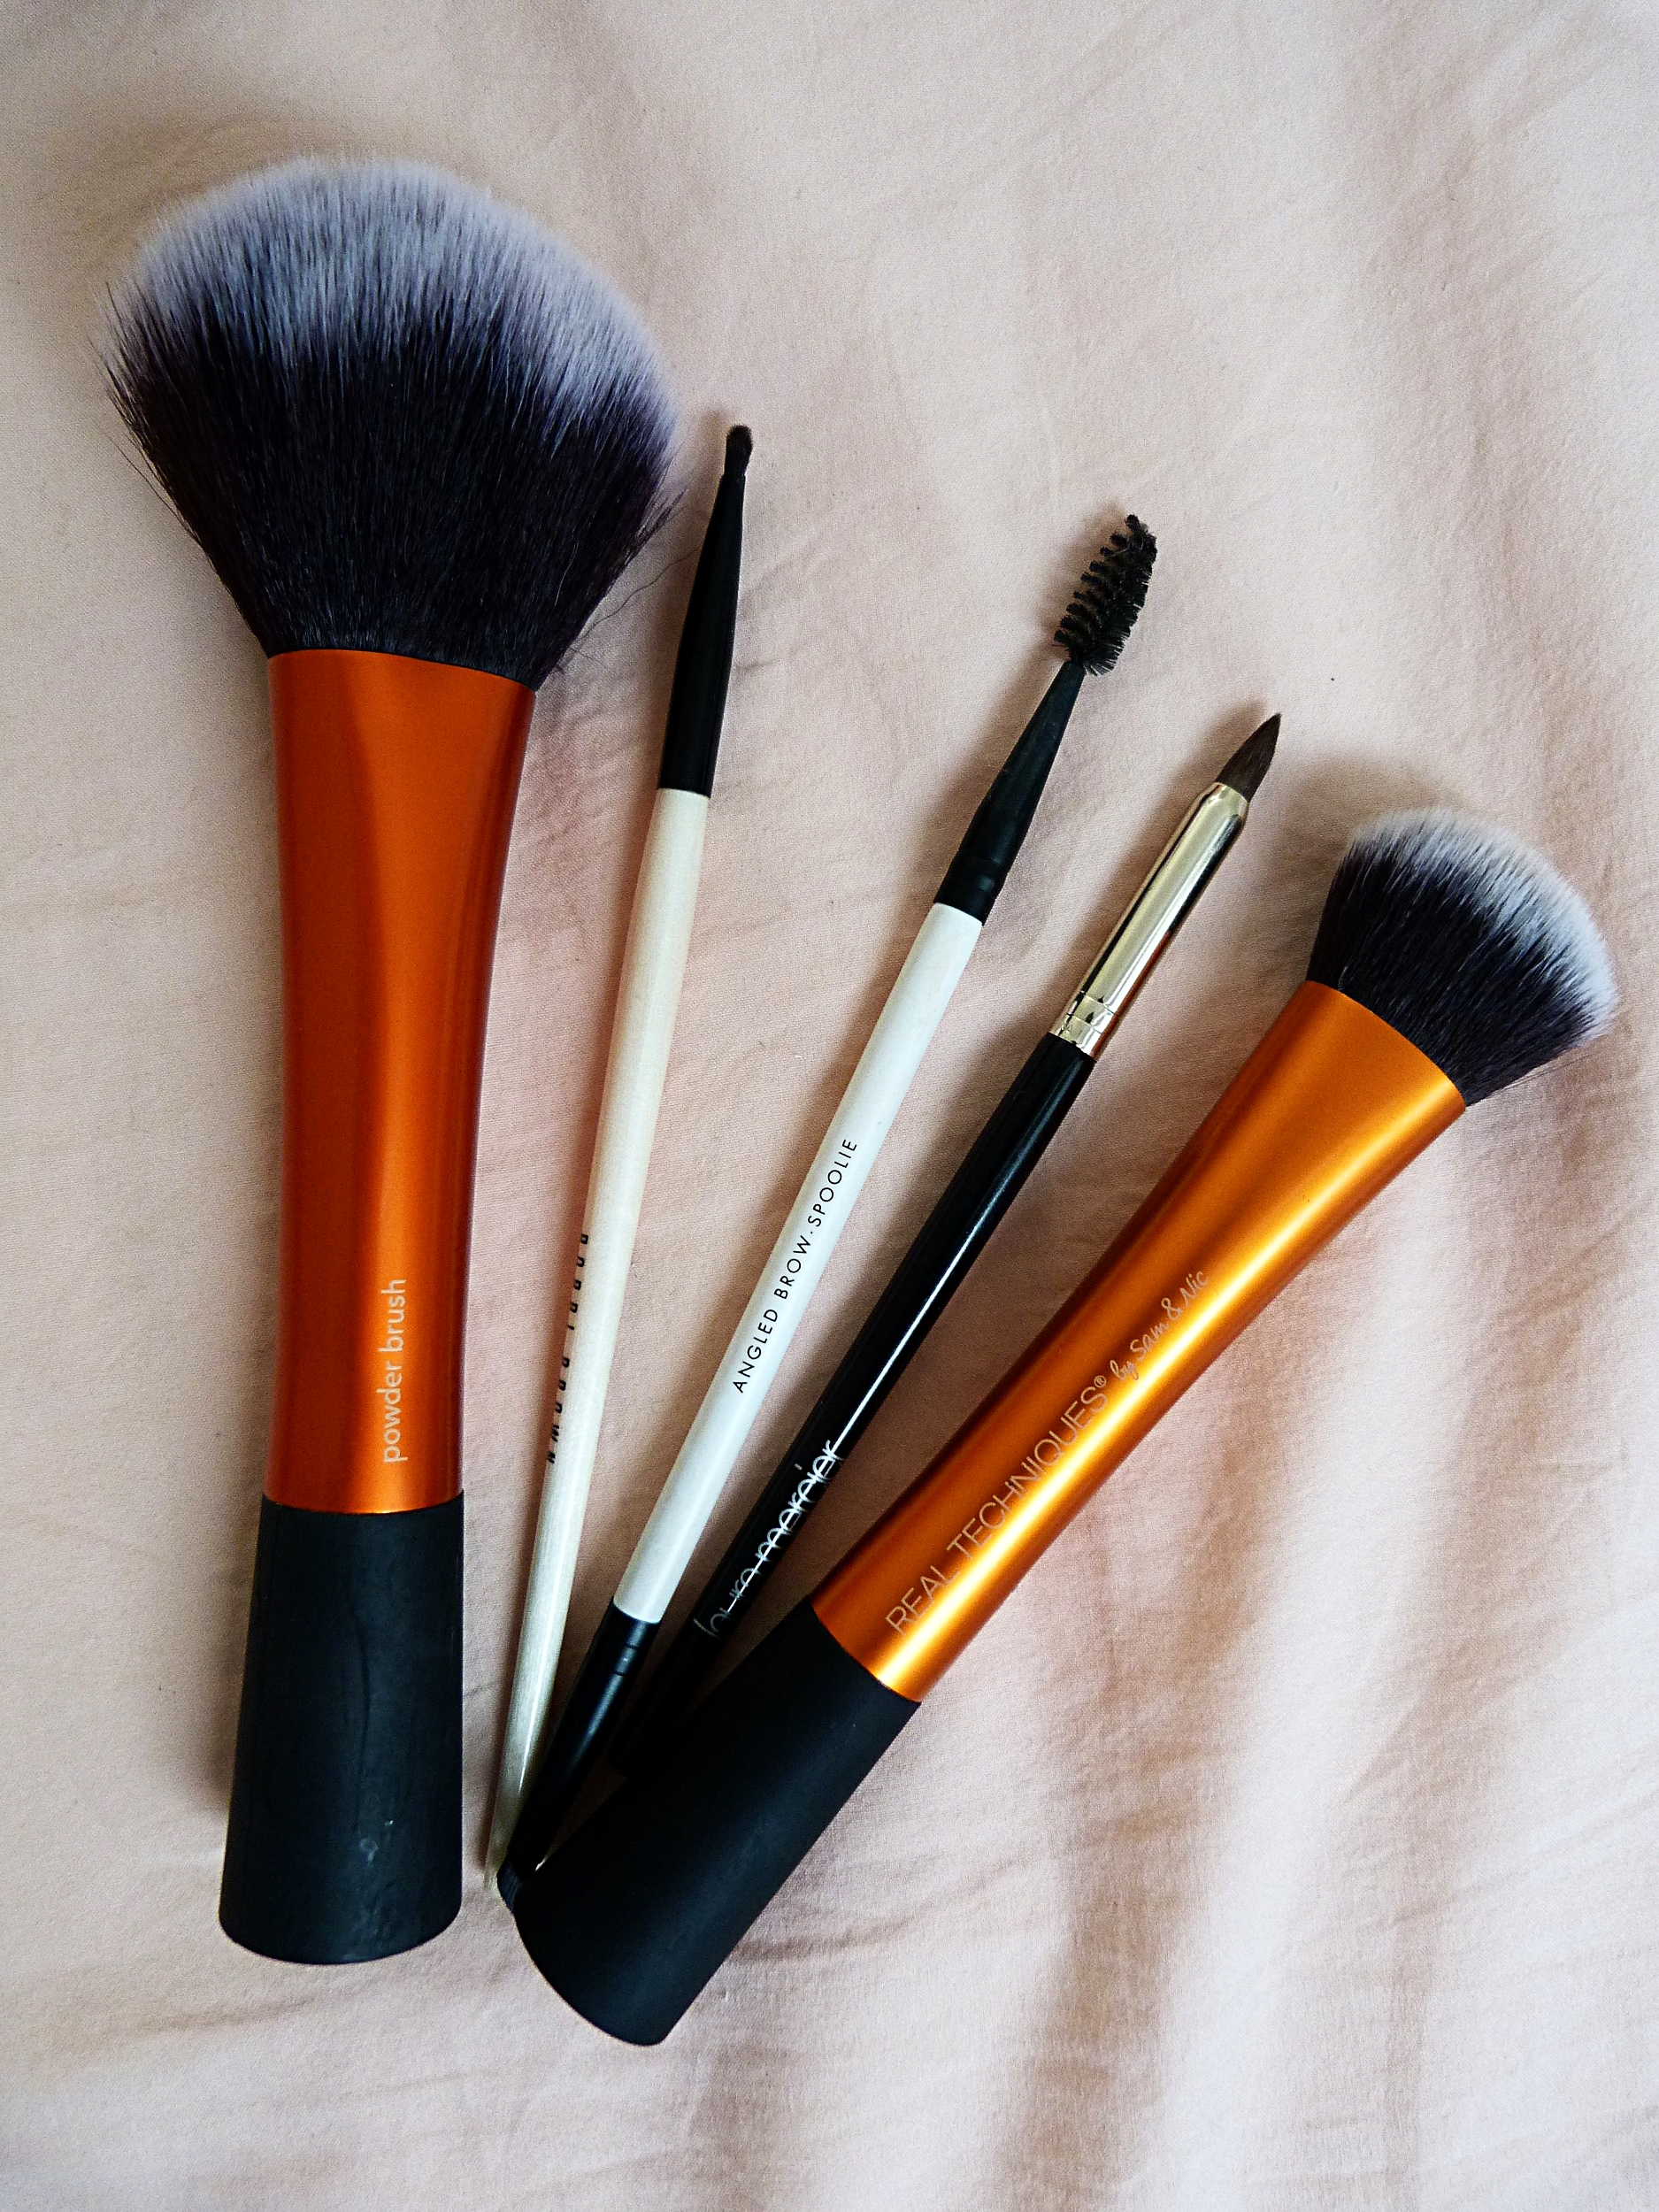 Left to Right      Real Techniques Powder Brush       Bobbi Brown Fine Eye Liner Brush      Lily Lolo Spoolie Brush      Laura Mercier Smoky Liner Brush      Real Techniques Expert Face Brush